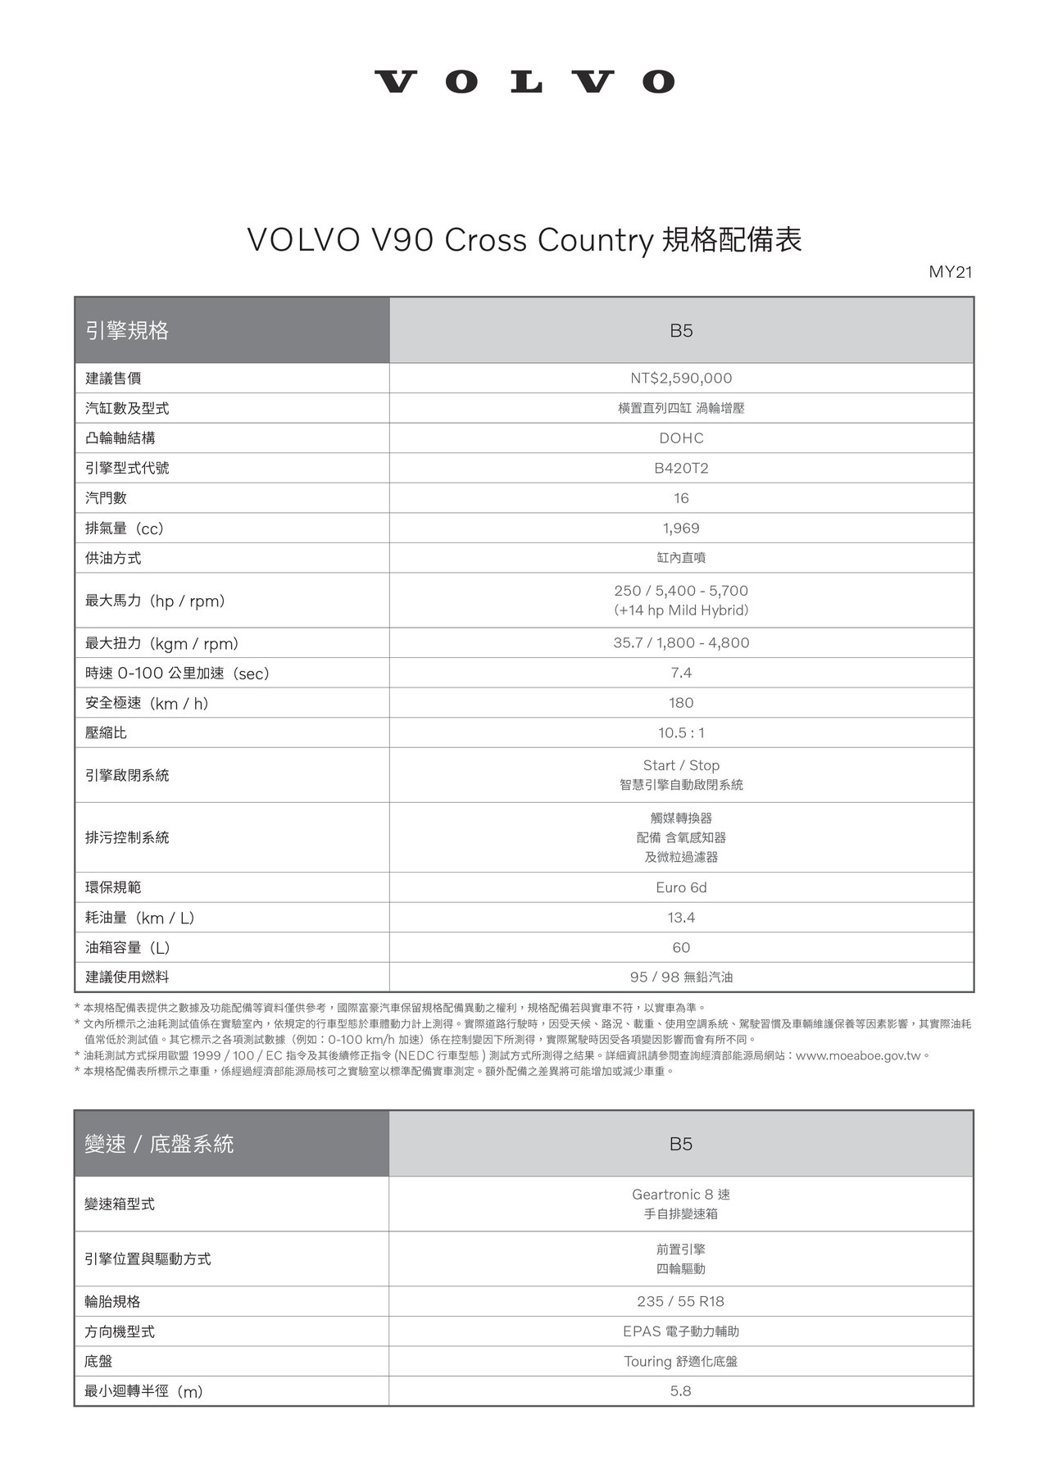 新年式V90 Cross Country B5 Momentum規格表。 圖/V...